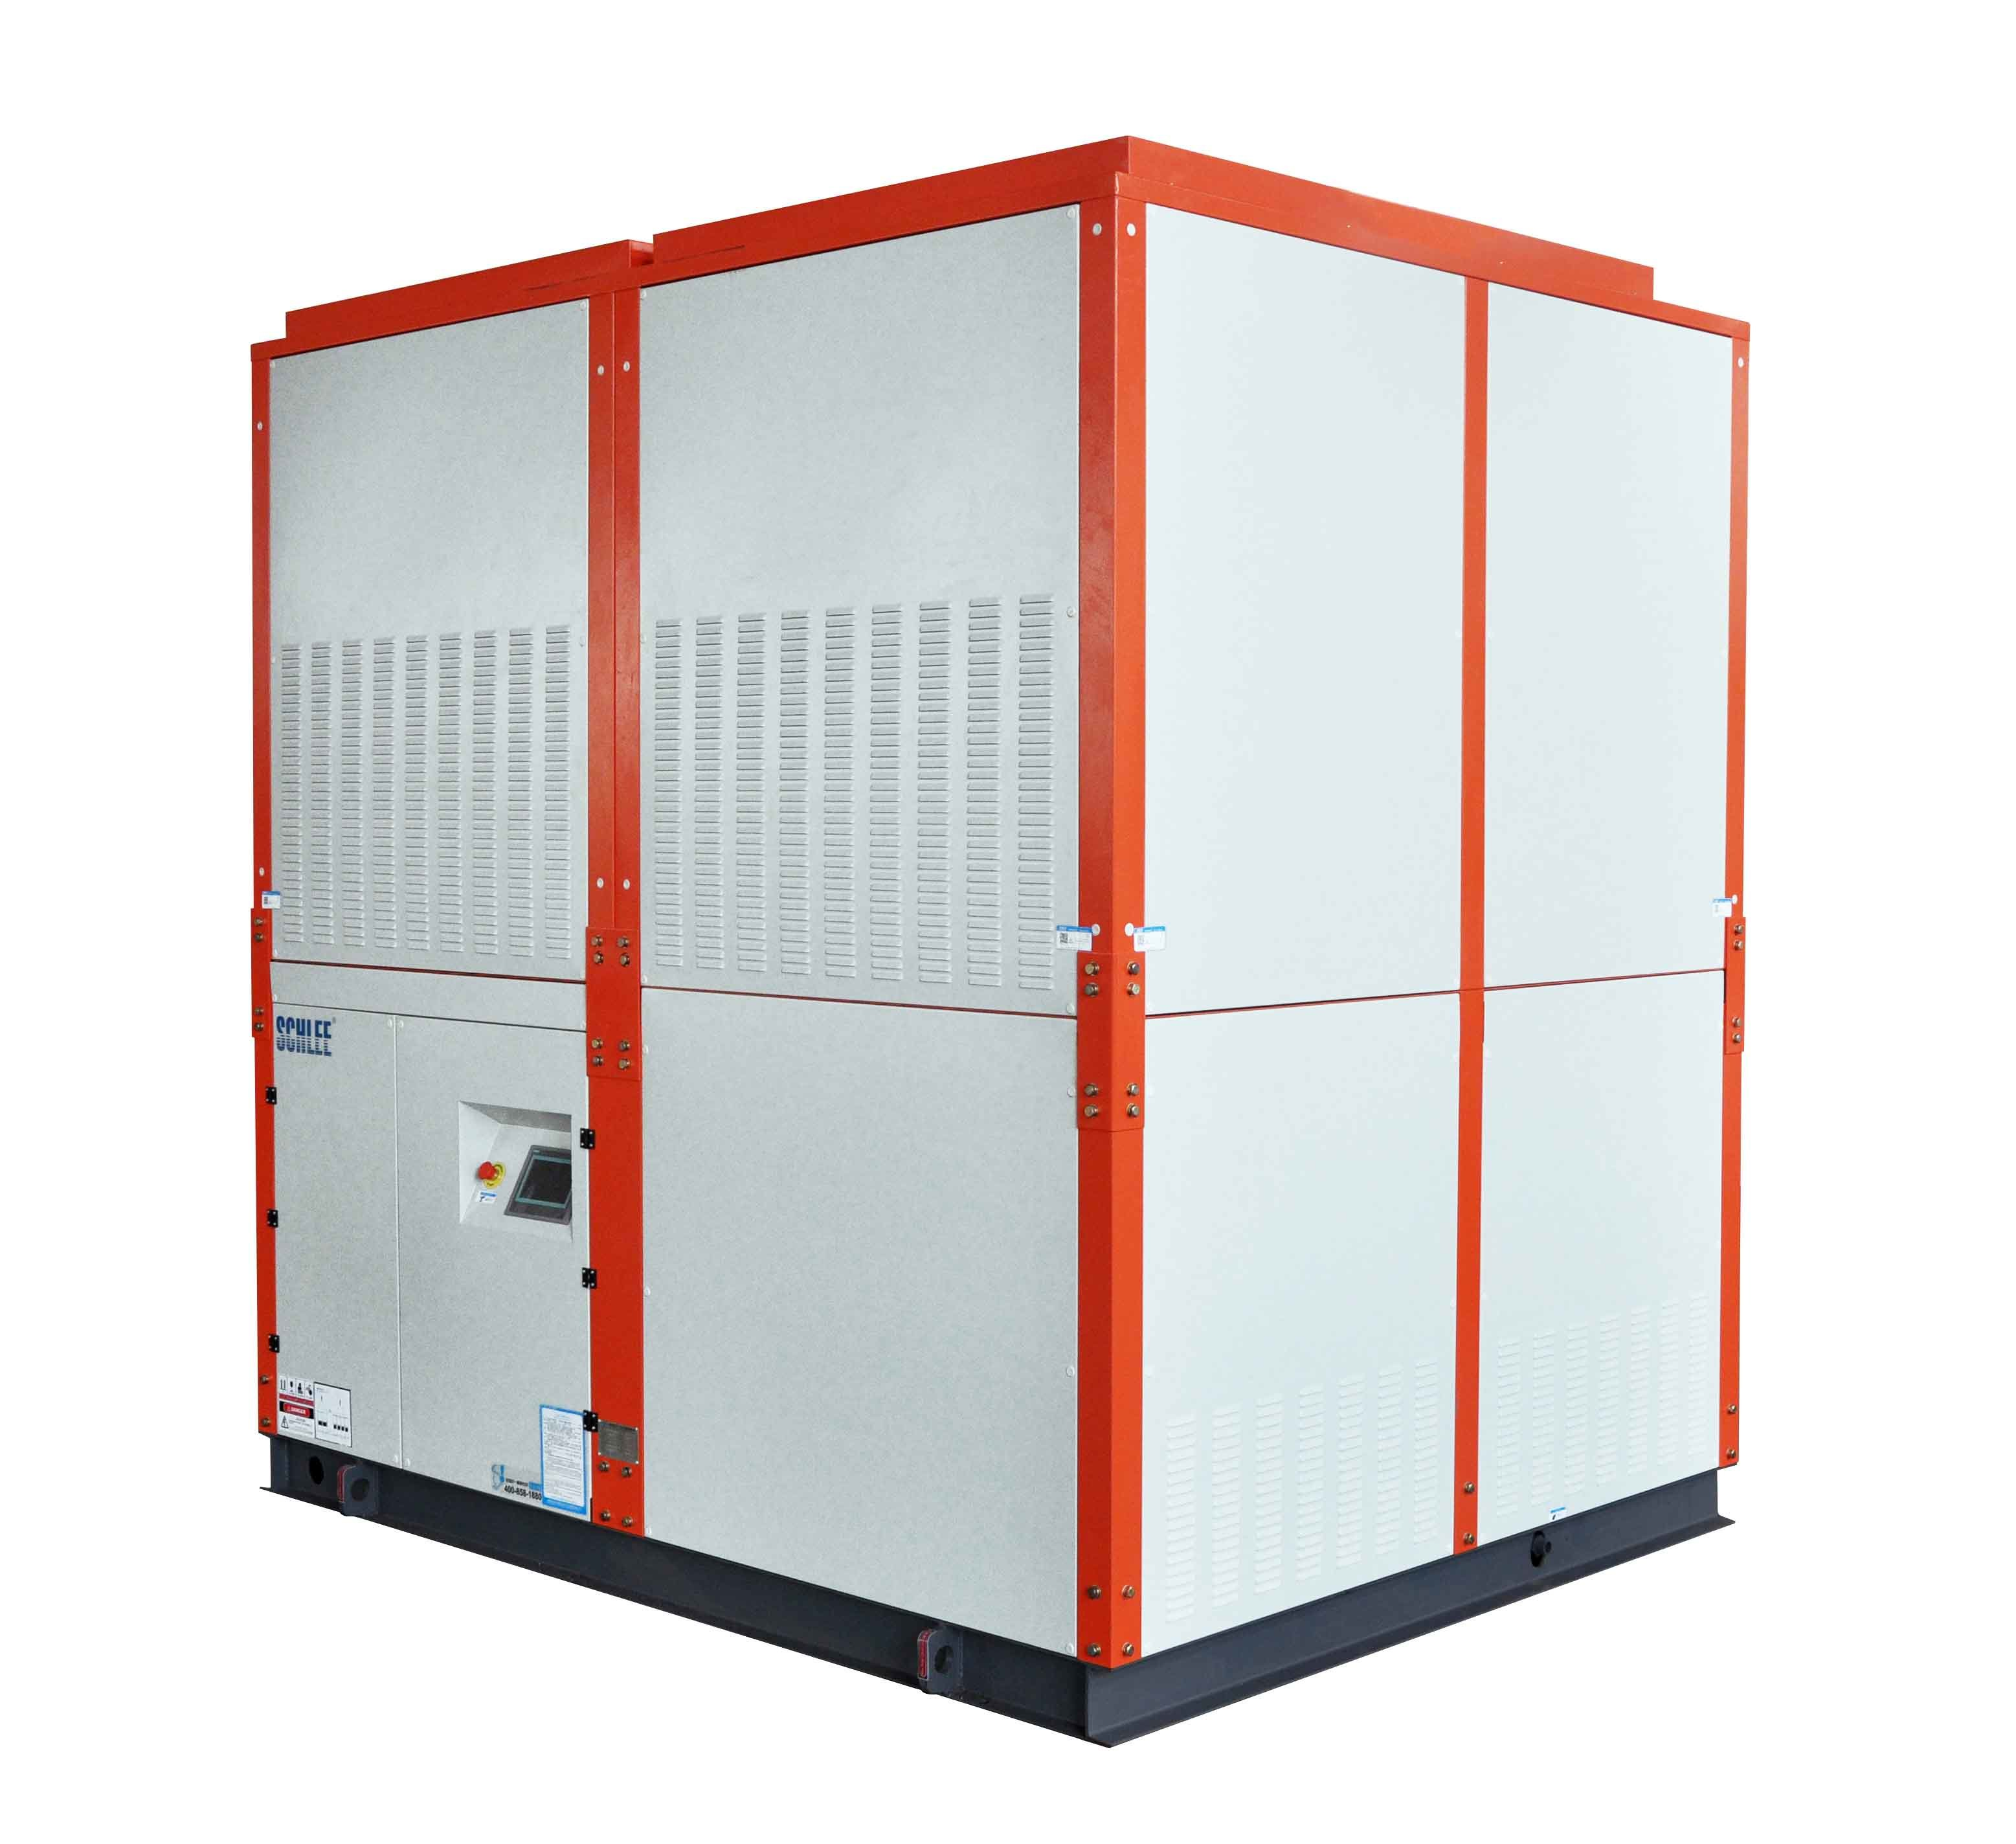 155kw Low Temperature Minus 35 Intergrated Chemical Industrial Evaporative Cooled Water Chiller